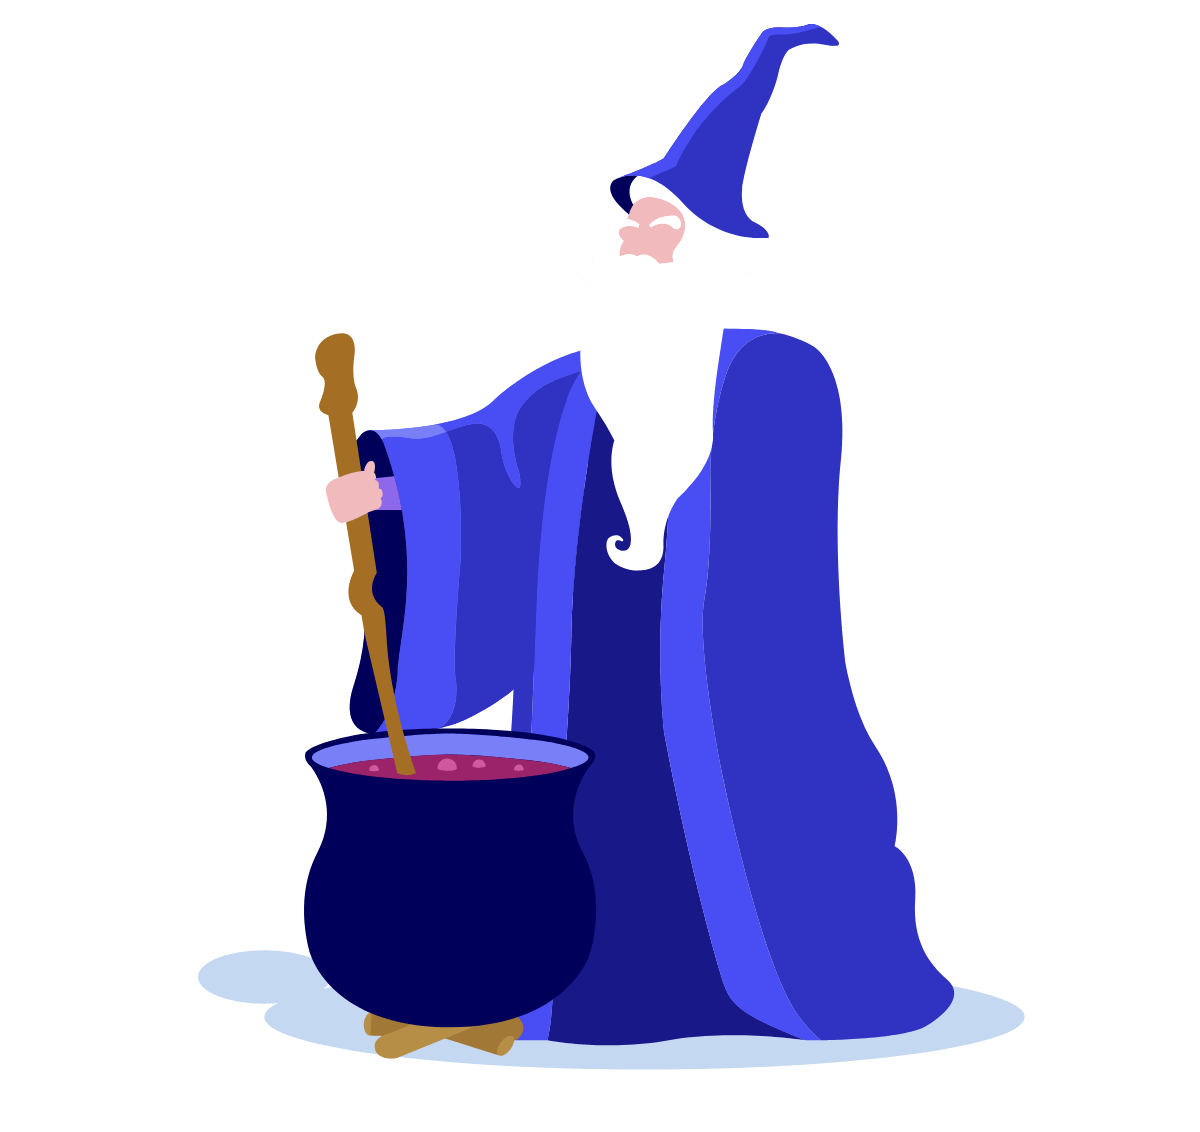 Wizard cooking up a spell in his cauldron